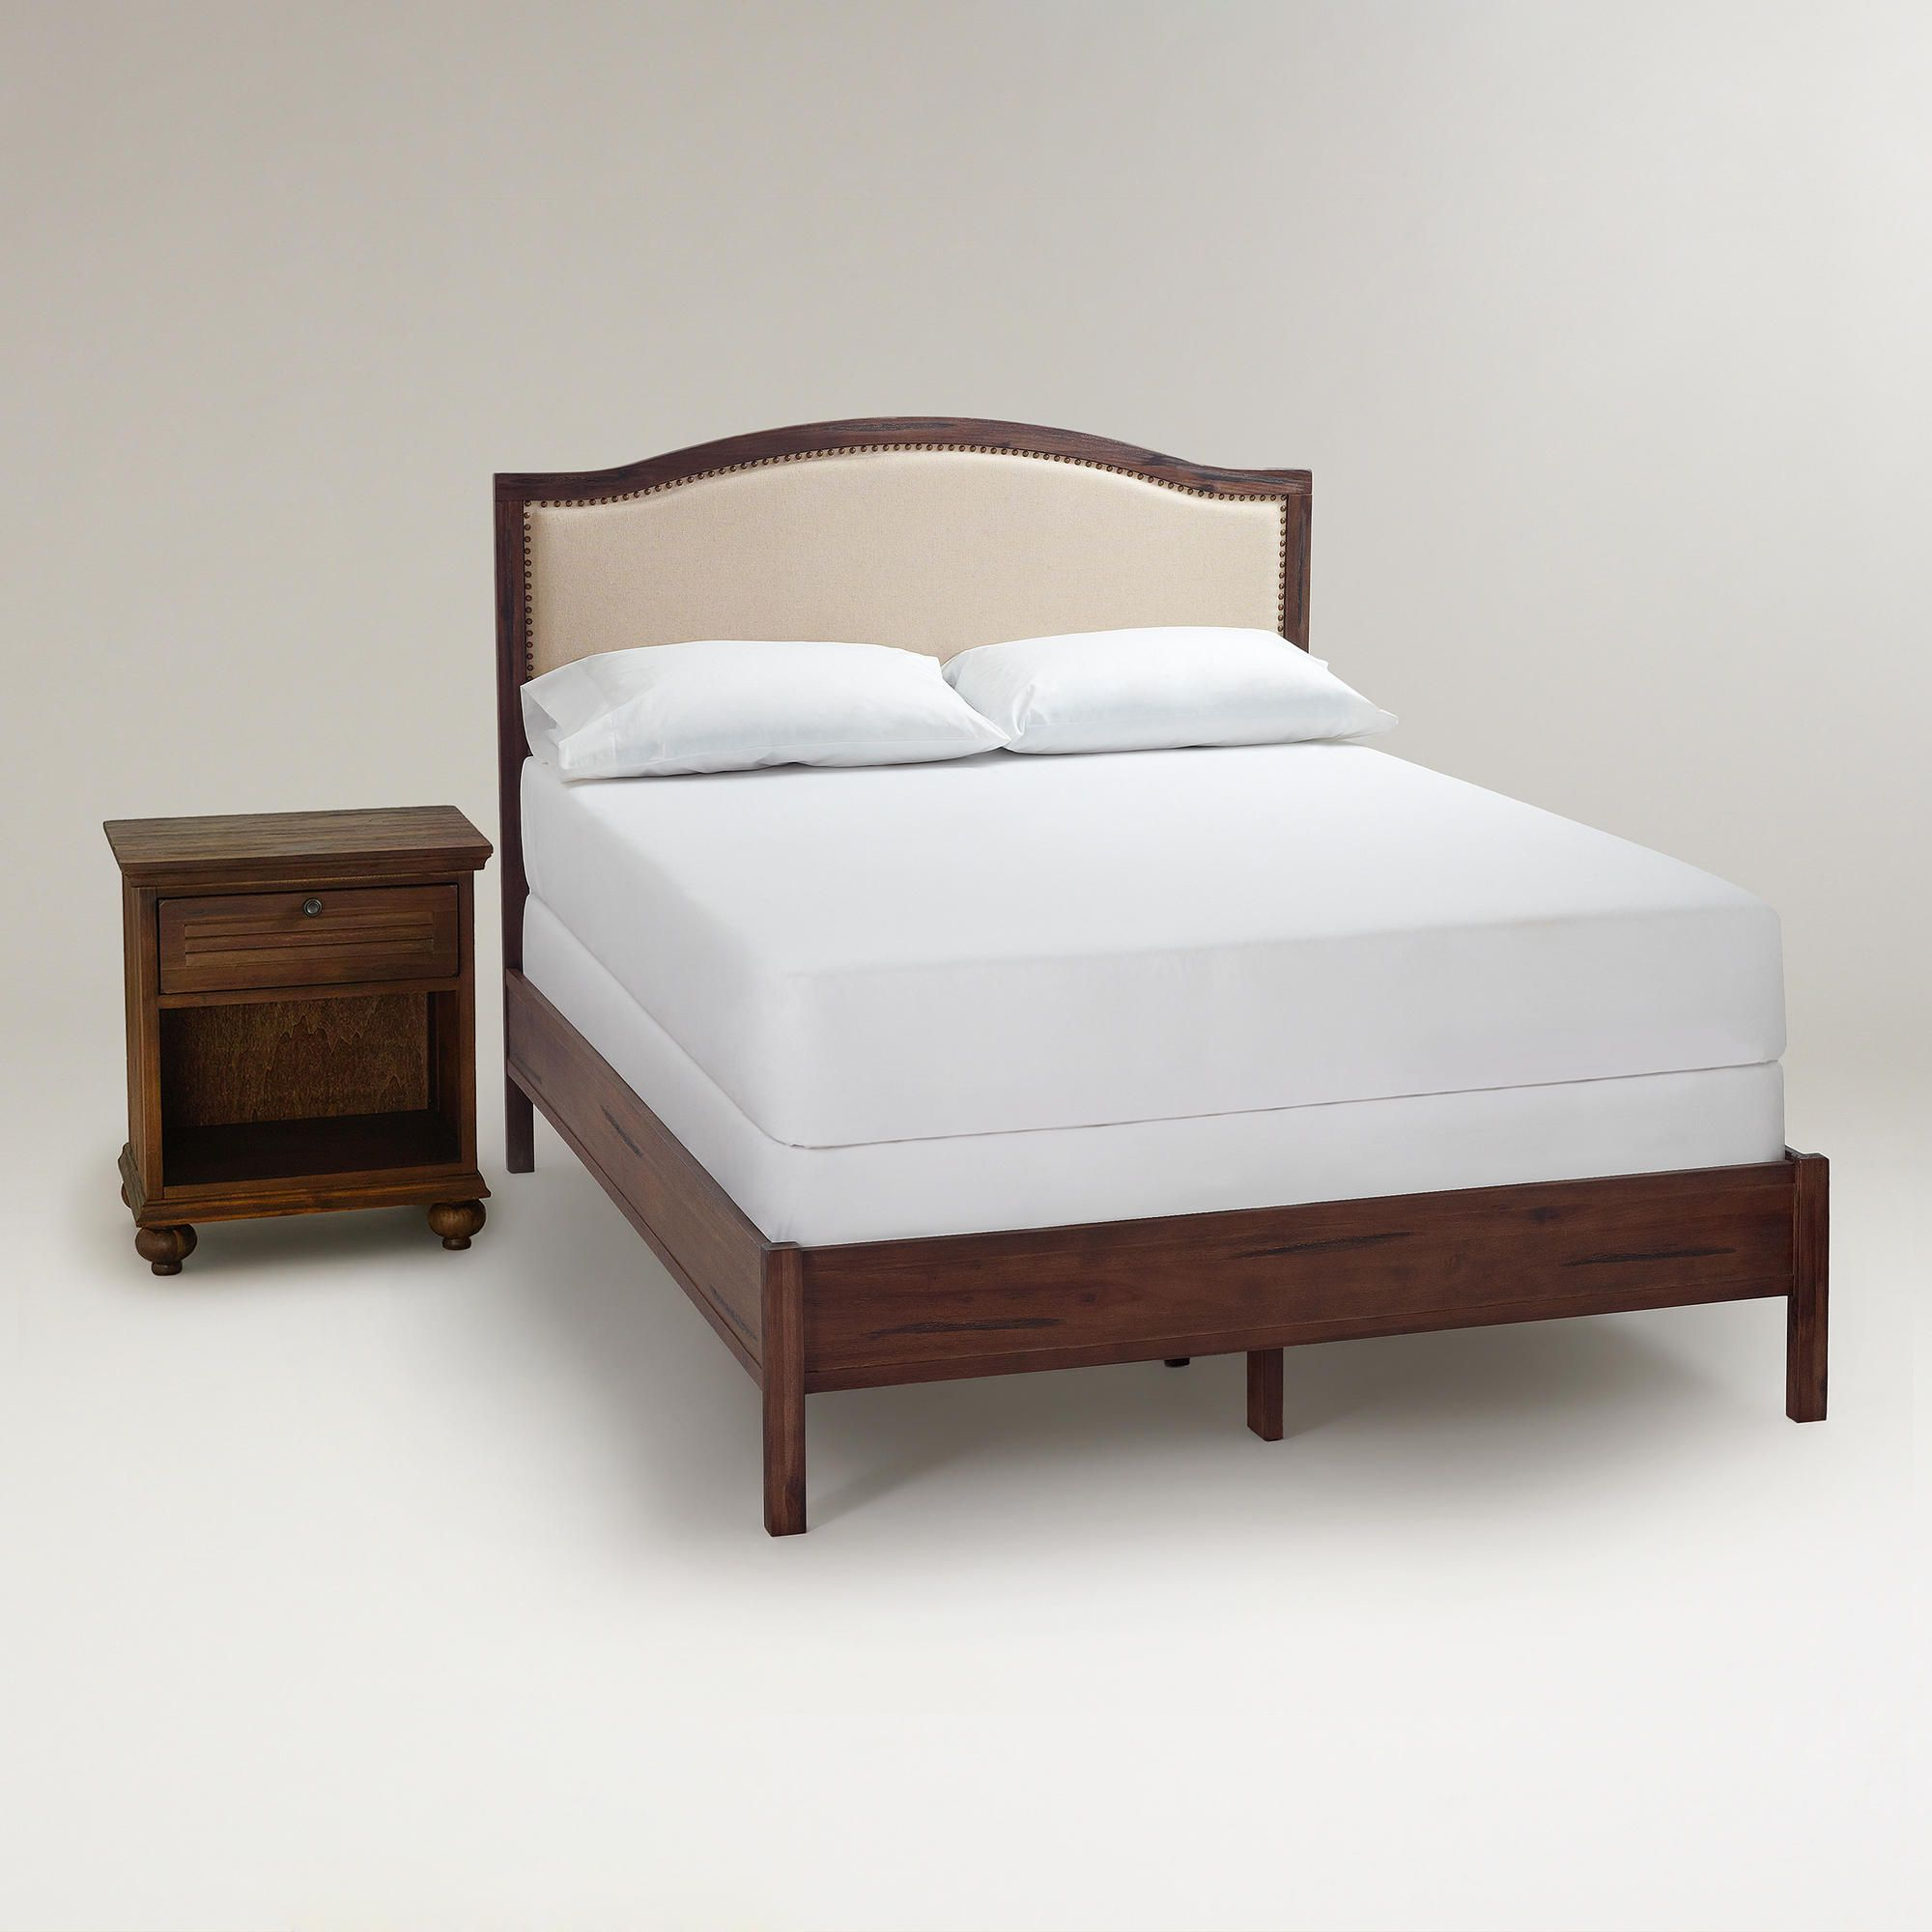 Courtney Furniture Collection World Market 300 Buy Now Before It S Gone Cheap Bed Frame Bedroom Furniture Beds Queen Size Bed Frames